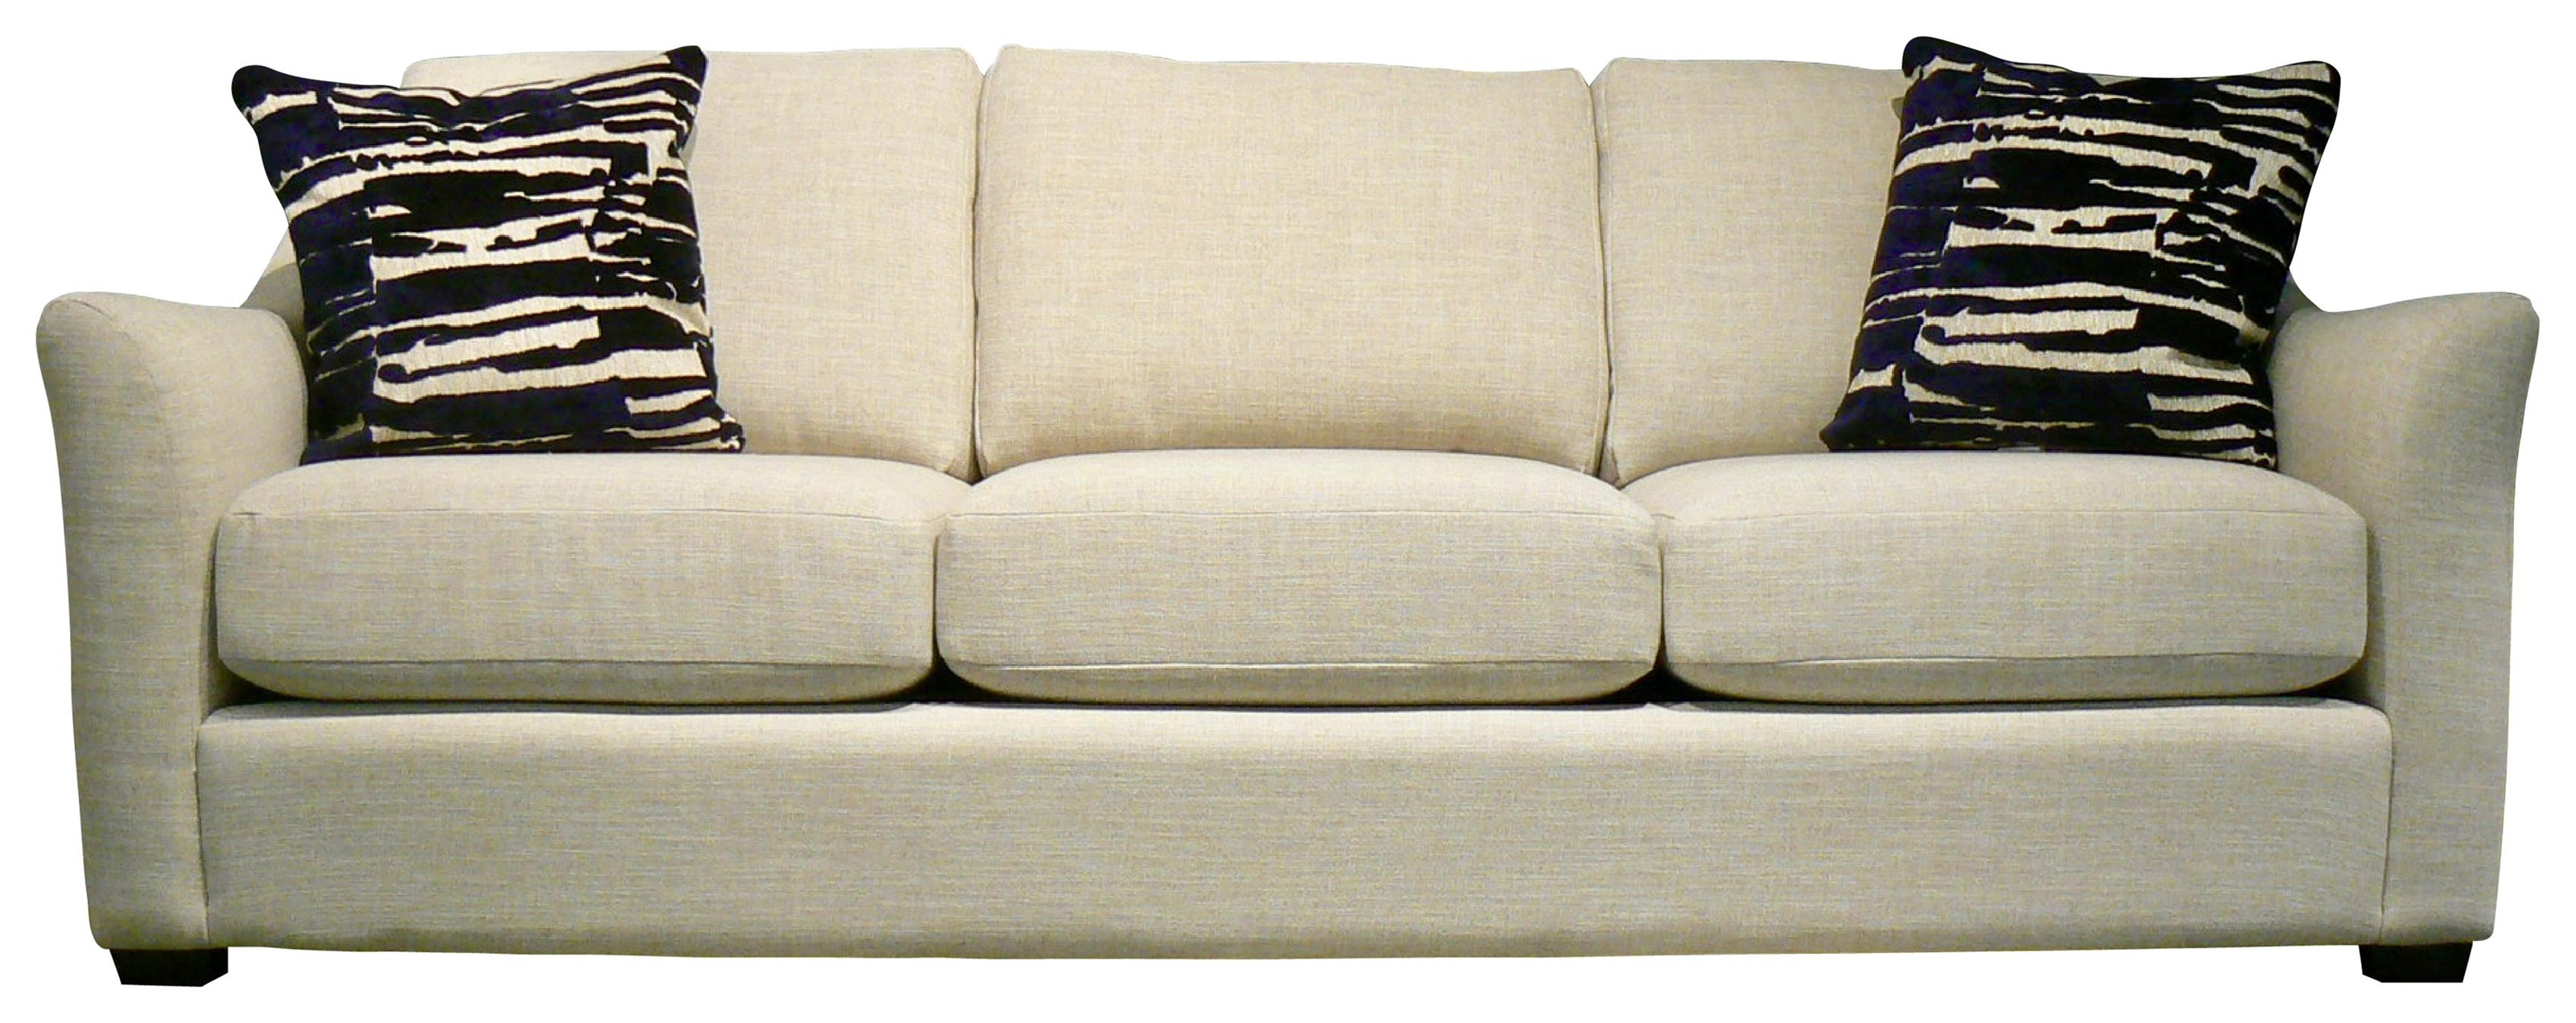 Nalo Sofa by Taelor Designs at Bennett's Furniture and Mattresses